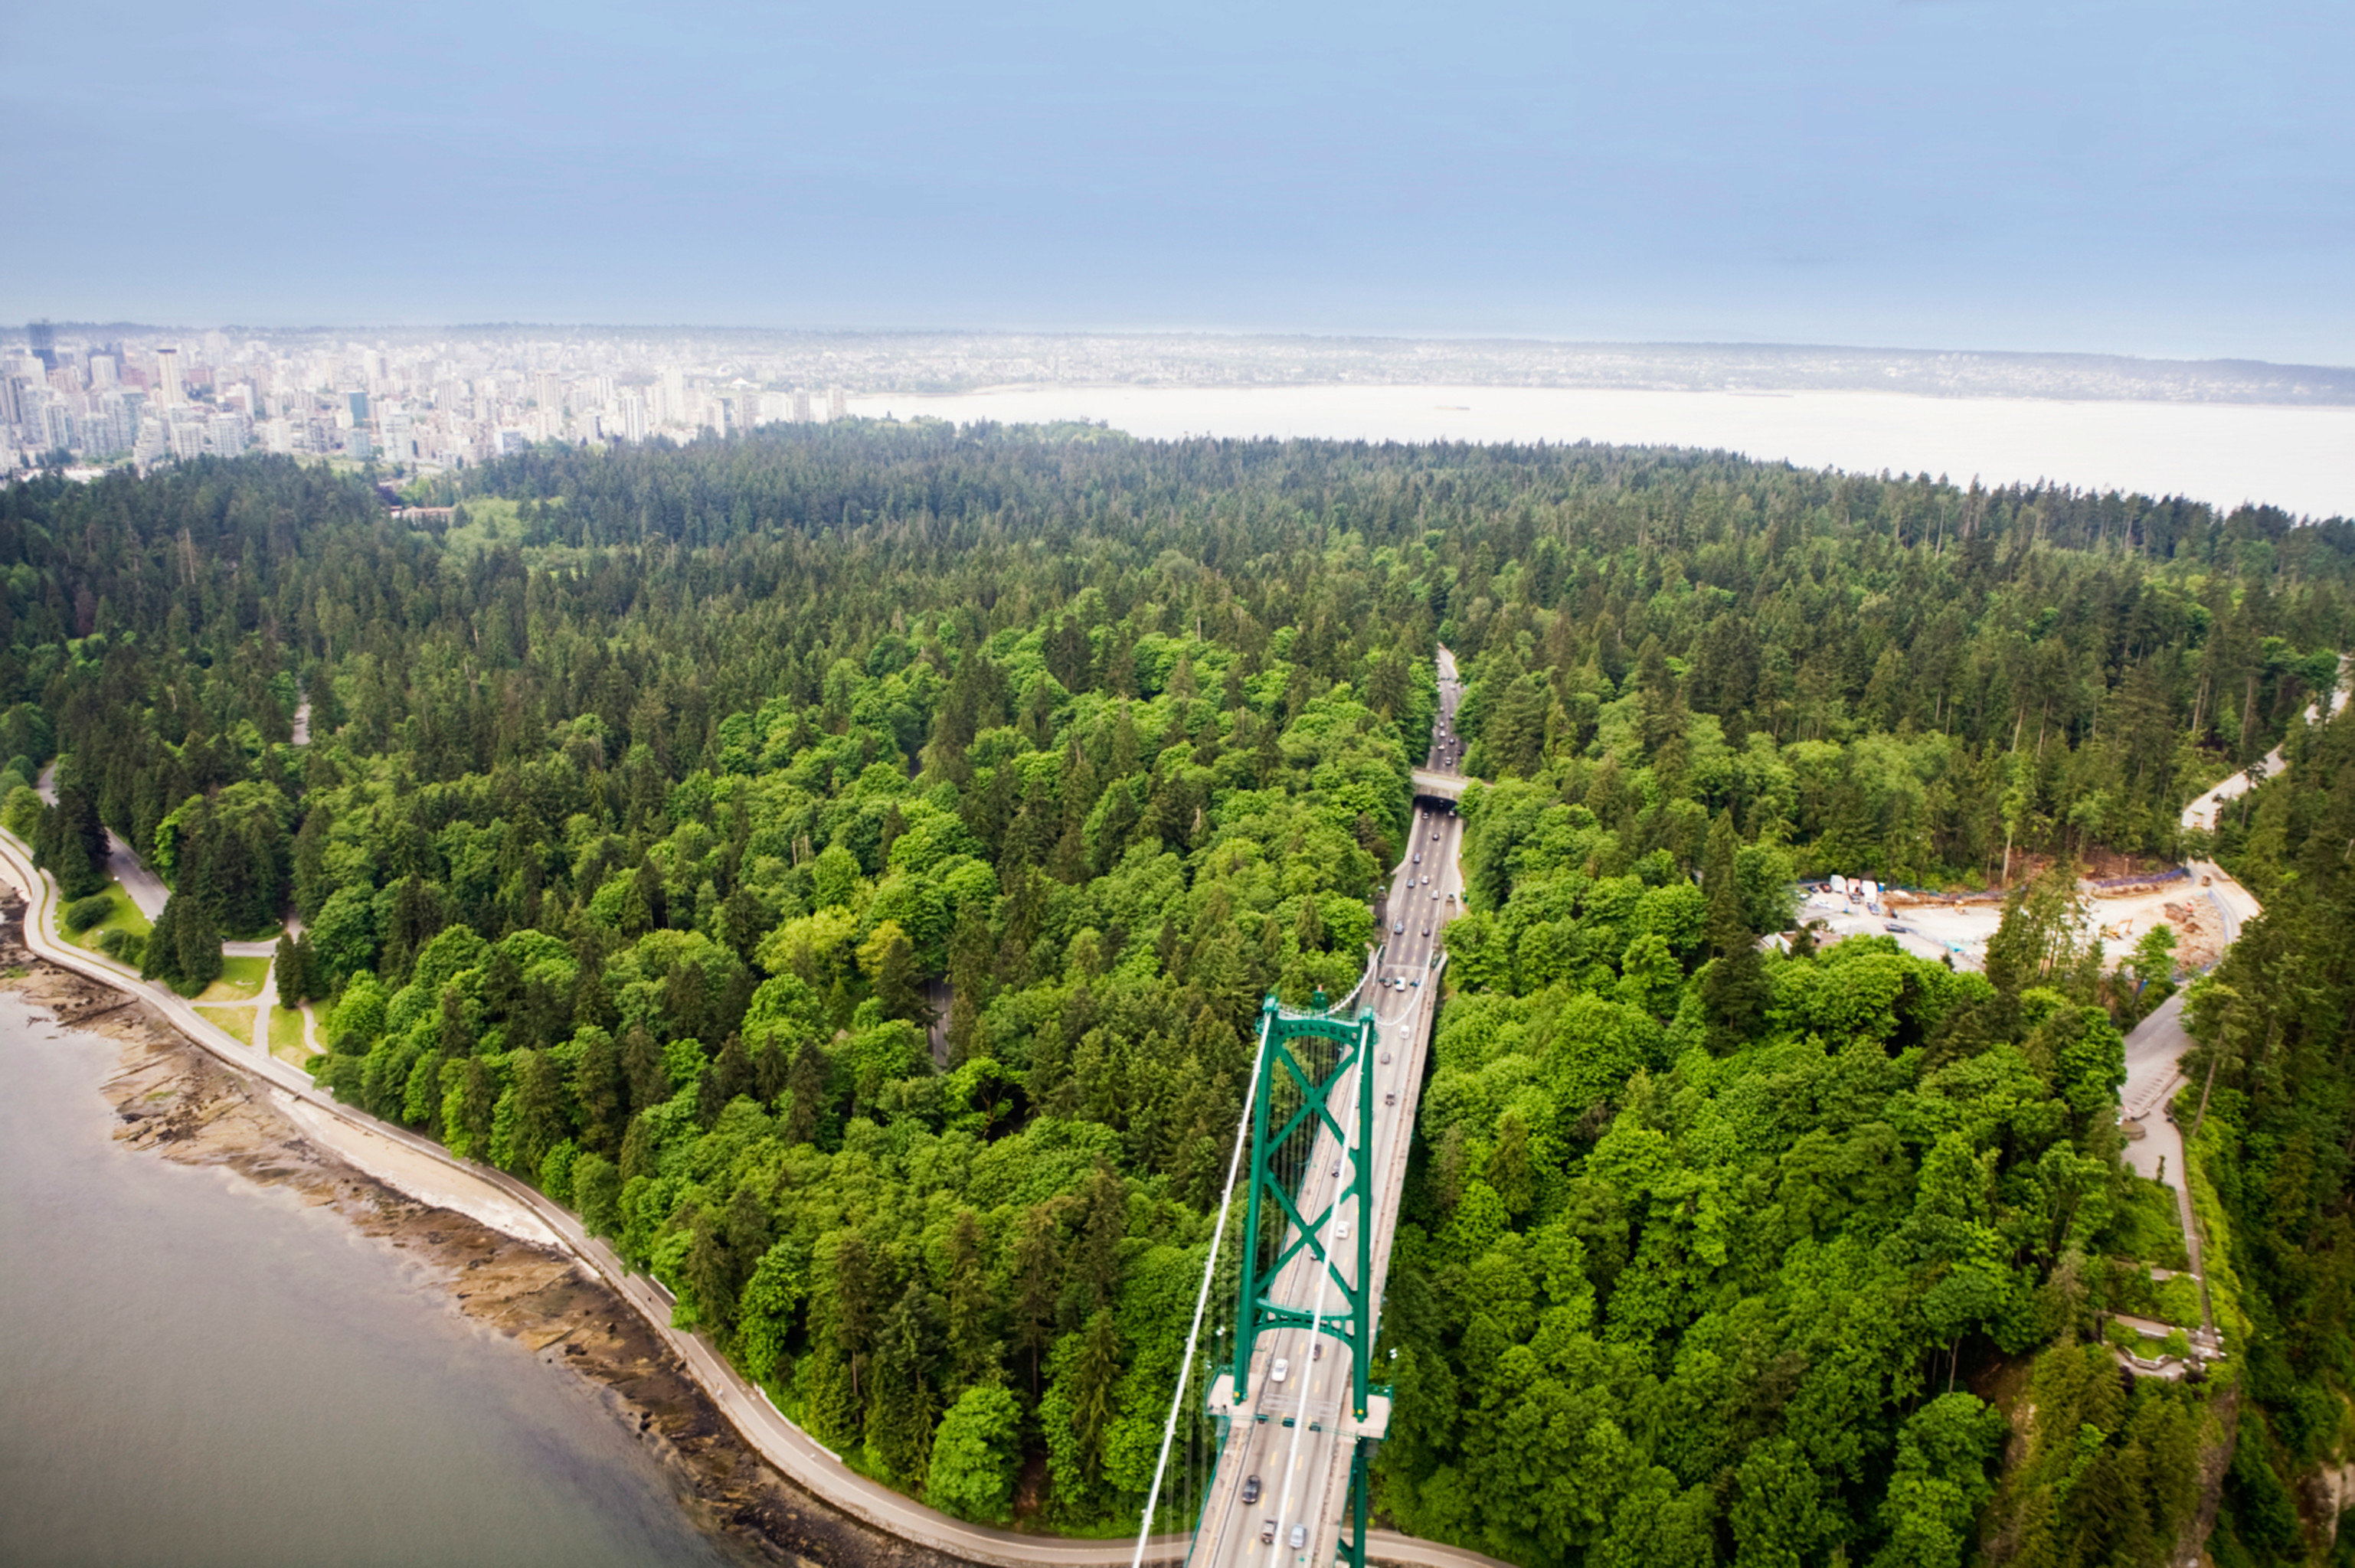 tree sky habitat mountain aerial photography landmark natural environment road hill bird's eye view Forest landscape traveling mountain range highway plant wooded